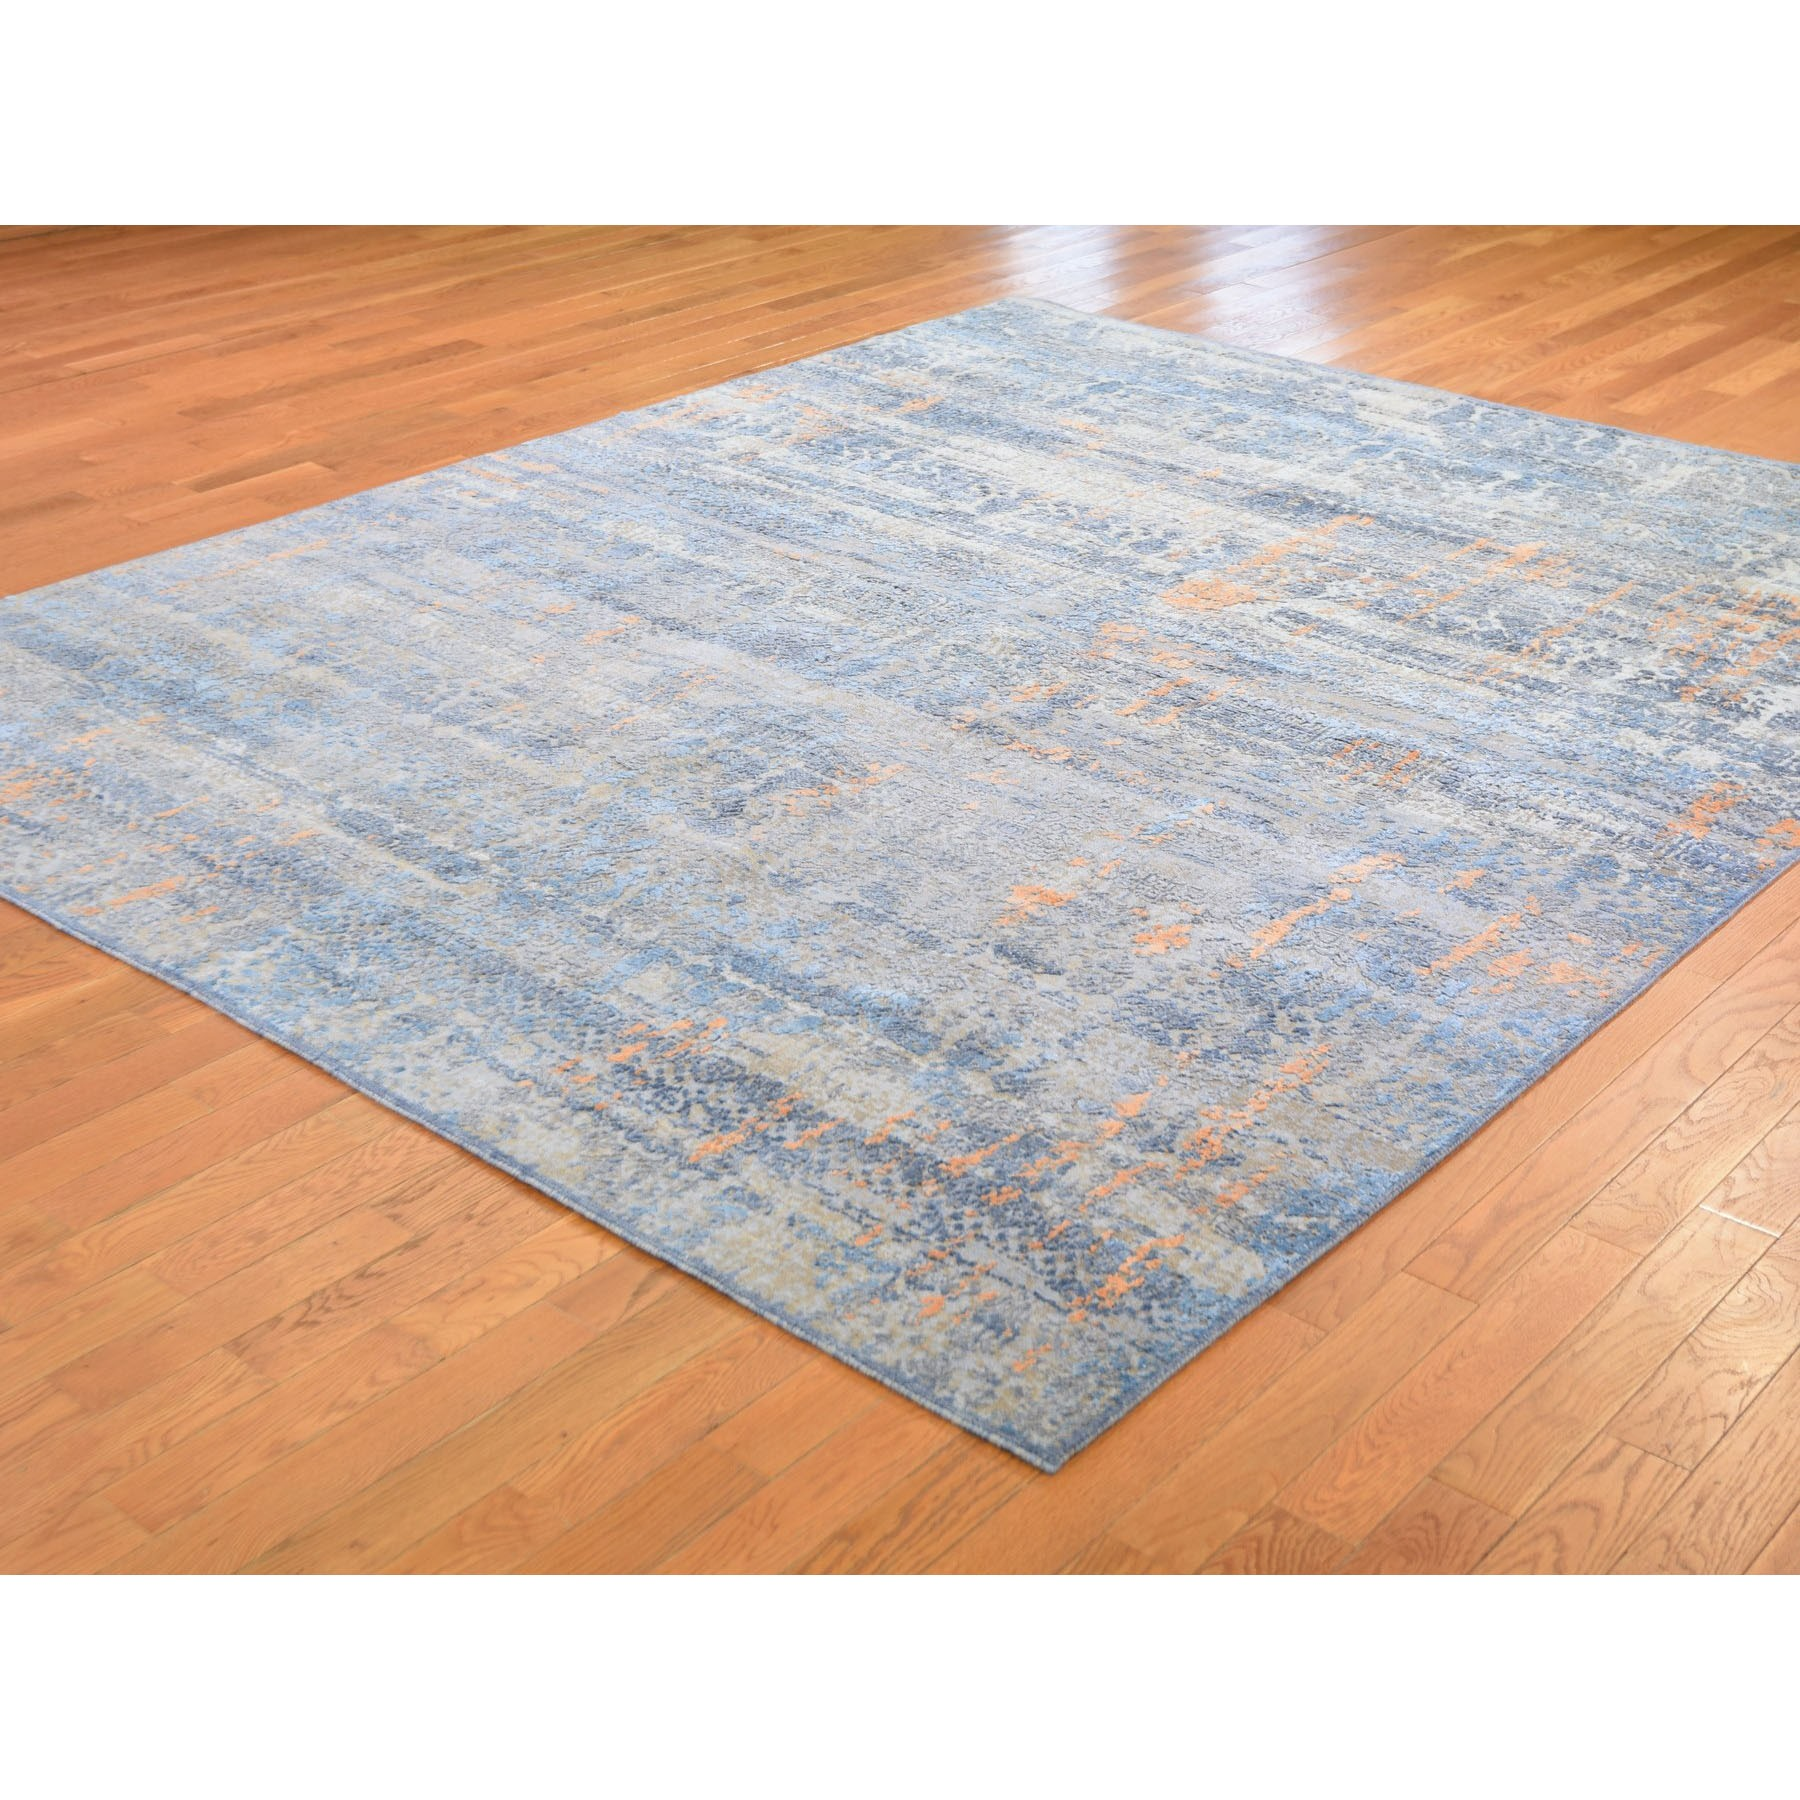 8-x10-  Light Blue Silk With Textured Wool Abstract Dripping Design Hand Knotted Oriental Rug